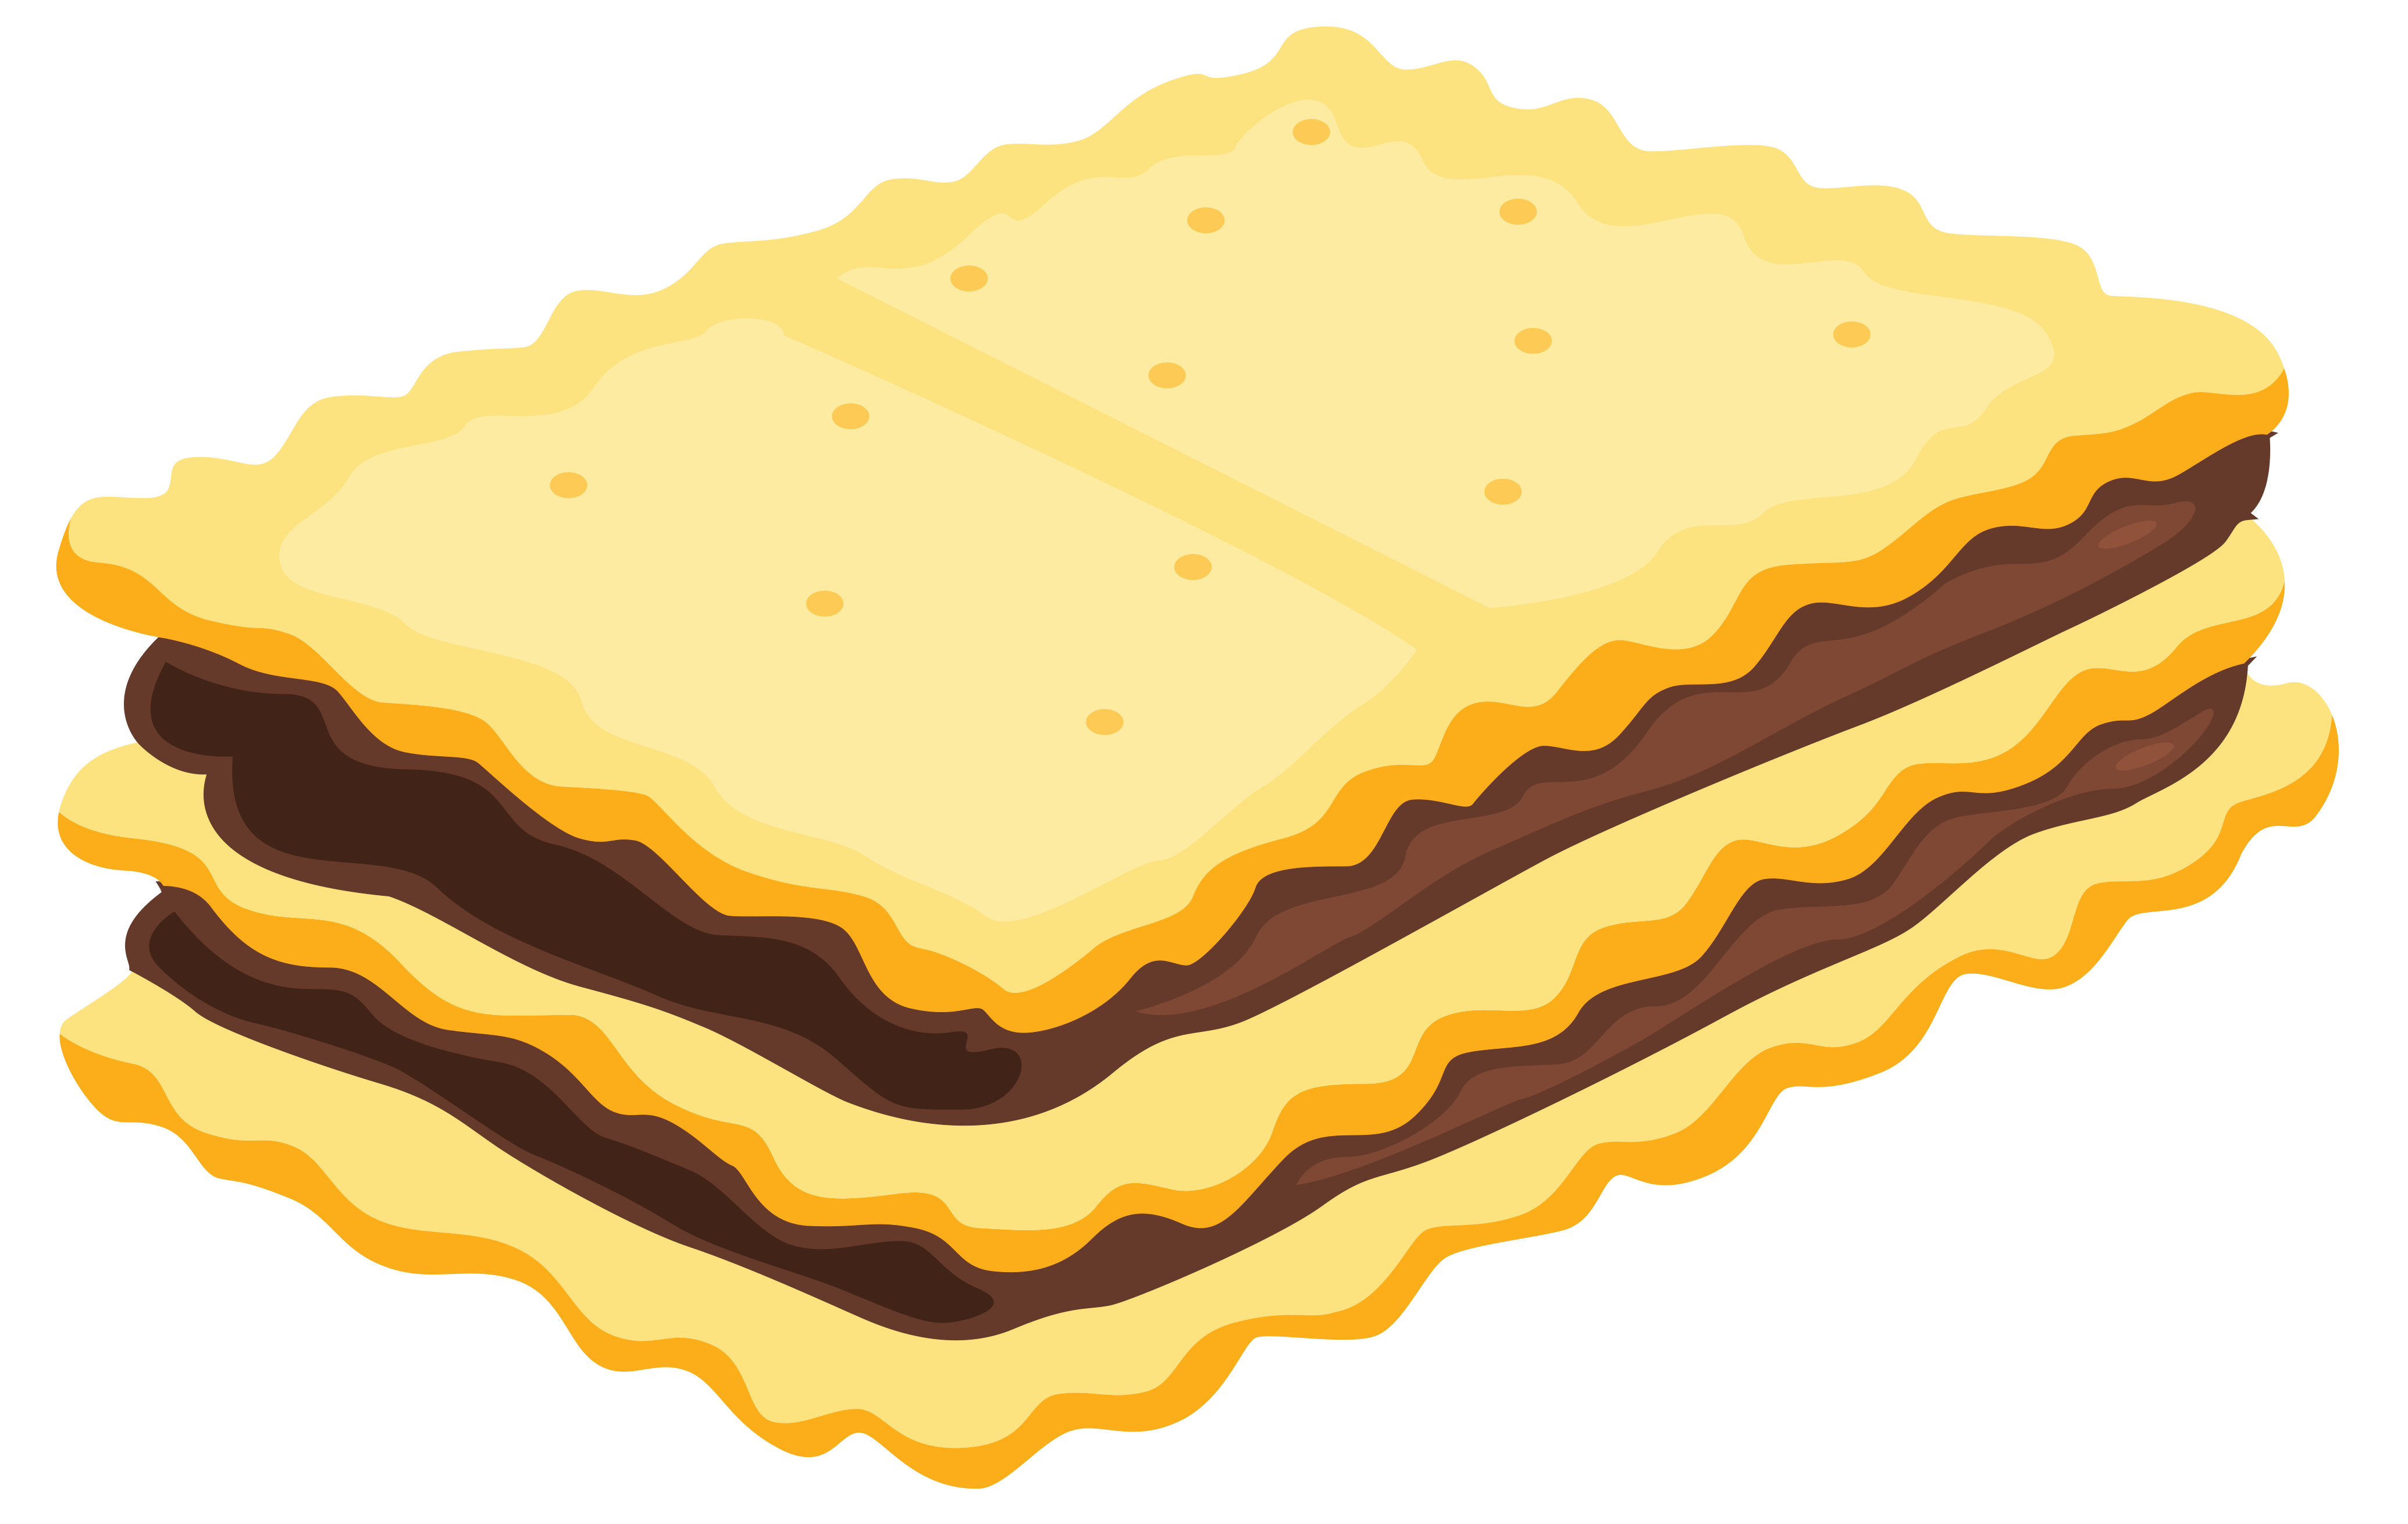 Sandwich biscuit with chocolate. Clipart png cookie